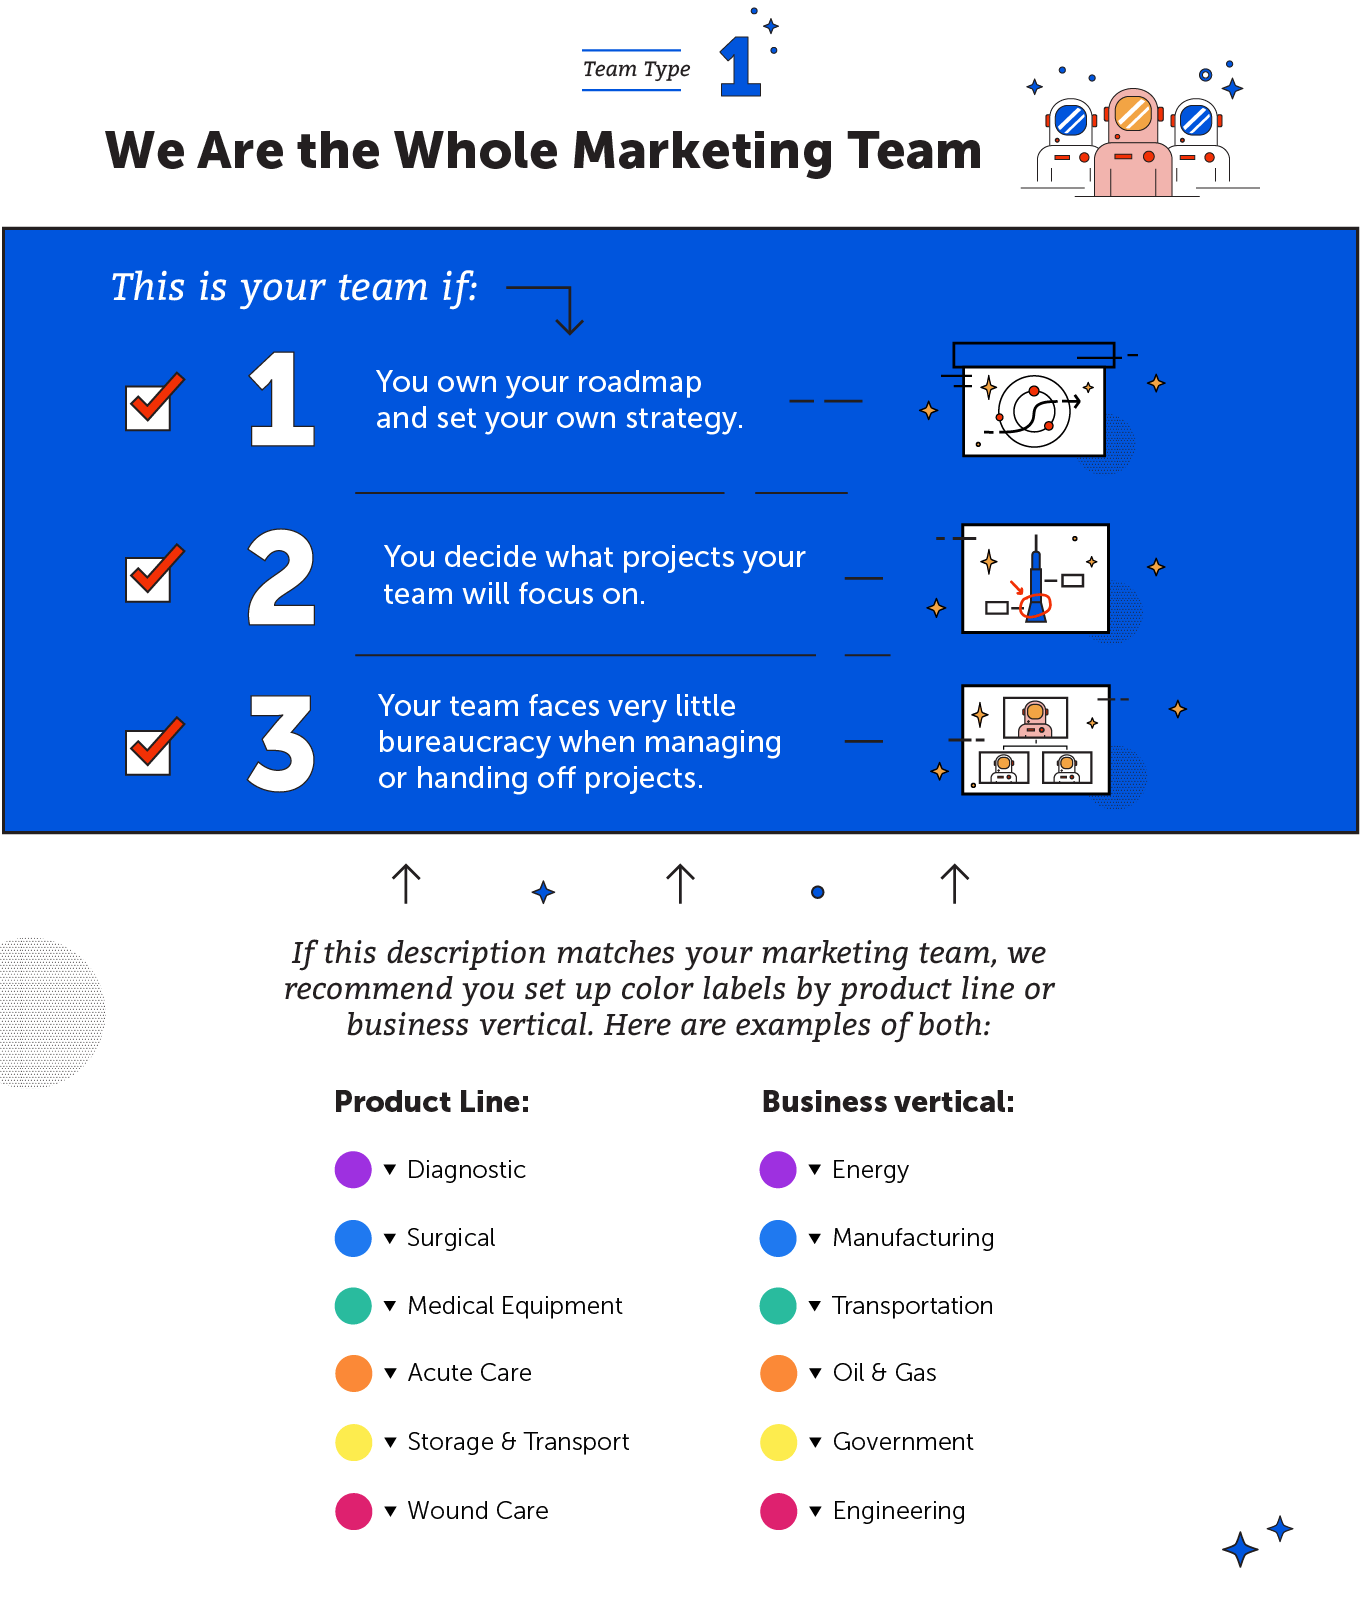 We are the whole marketing team